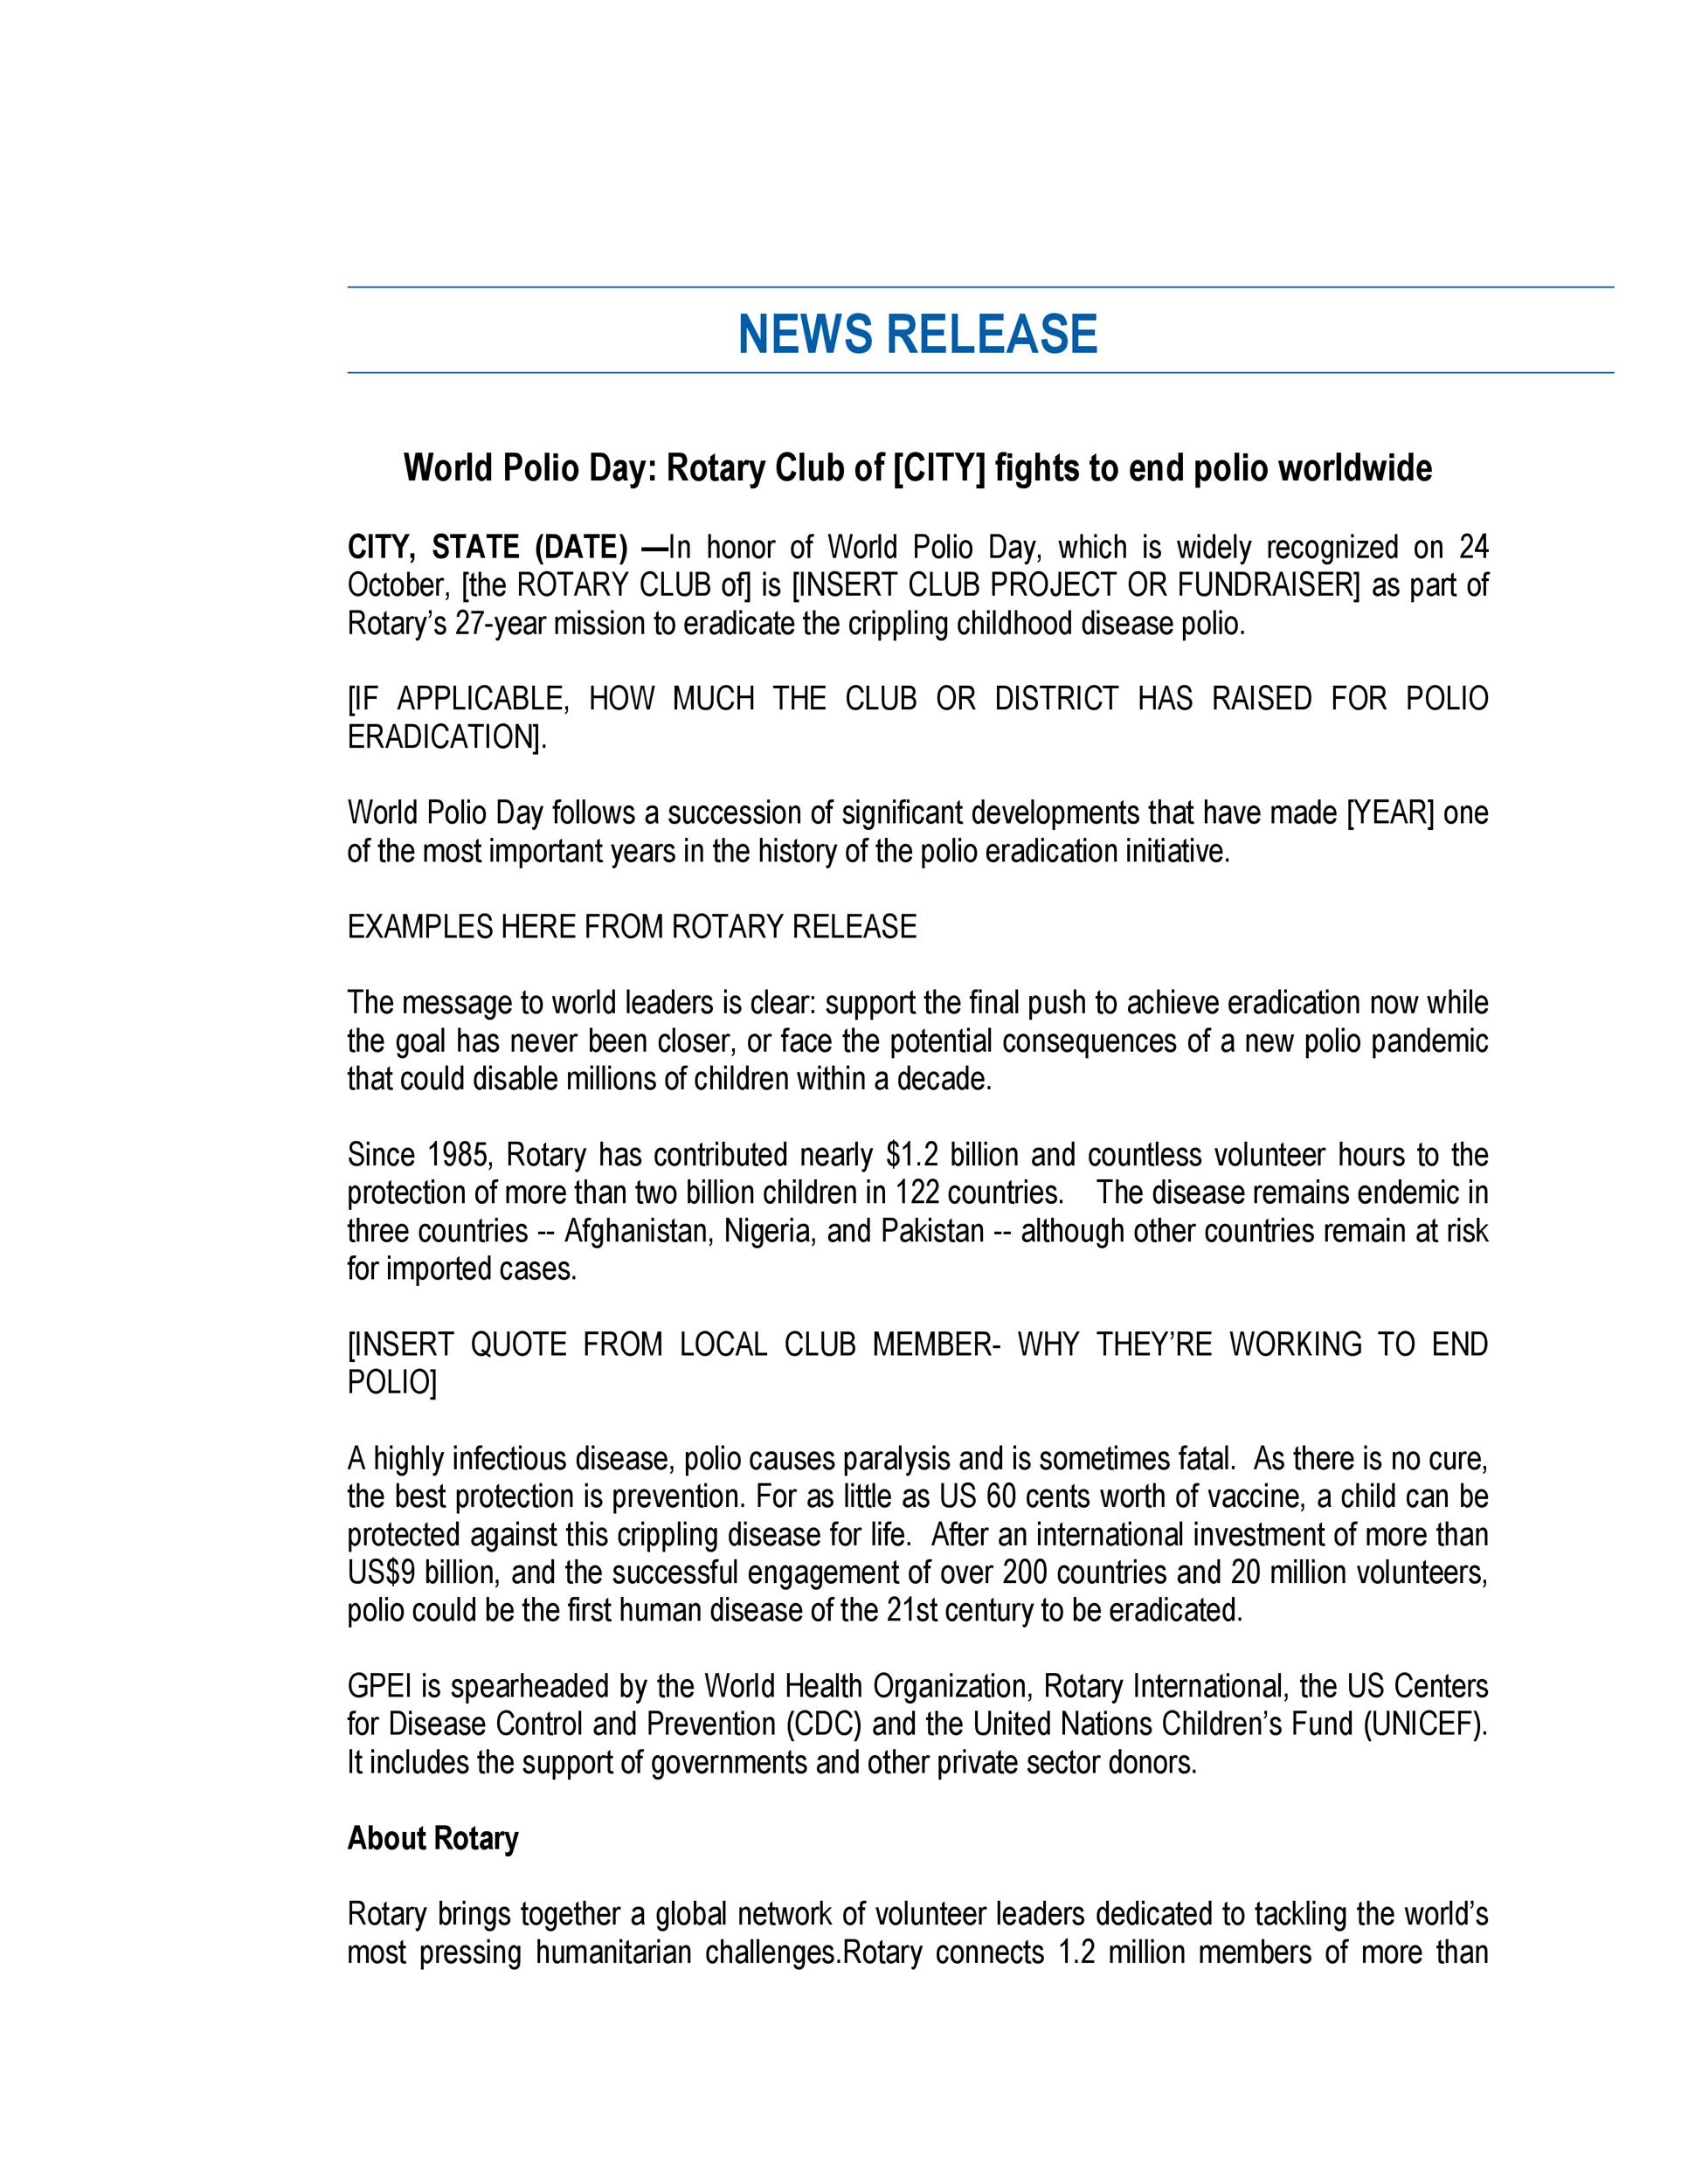 46 press release format templates examples samples template lab press release template 06